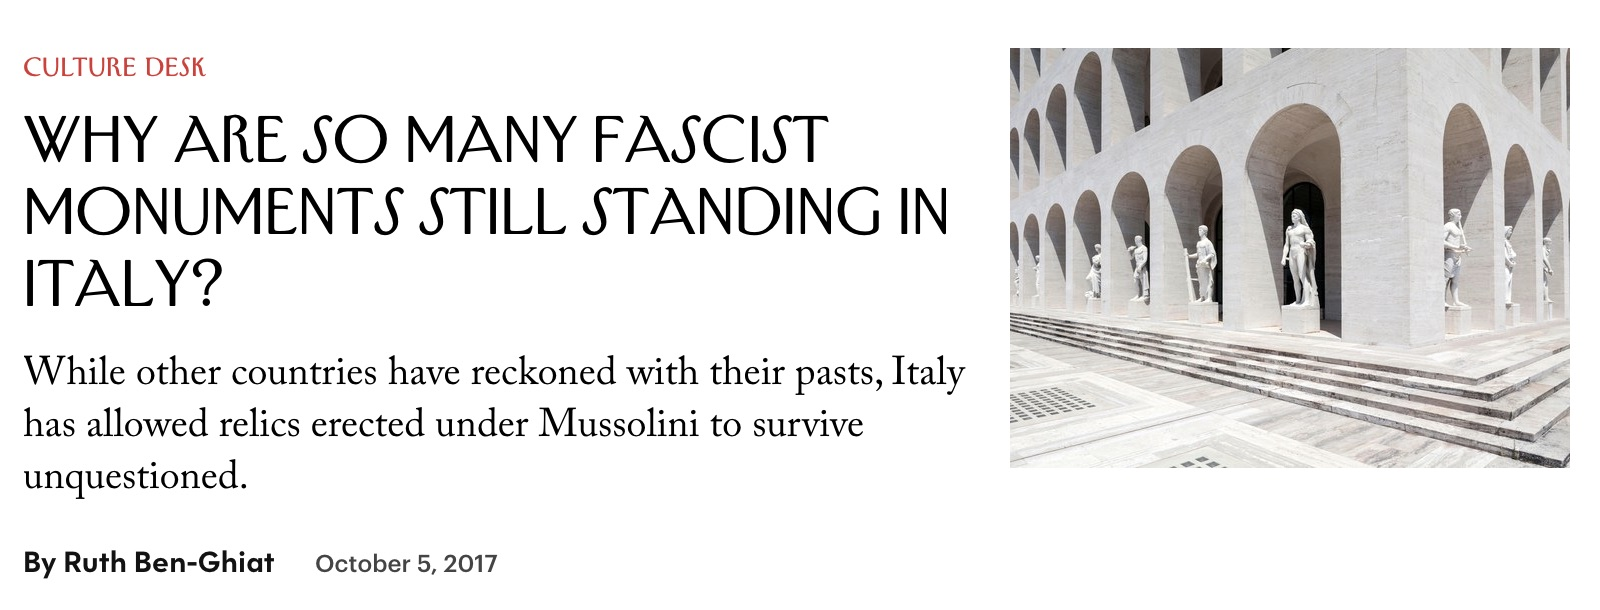 Wy are so many fascist building still standing in Italy?